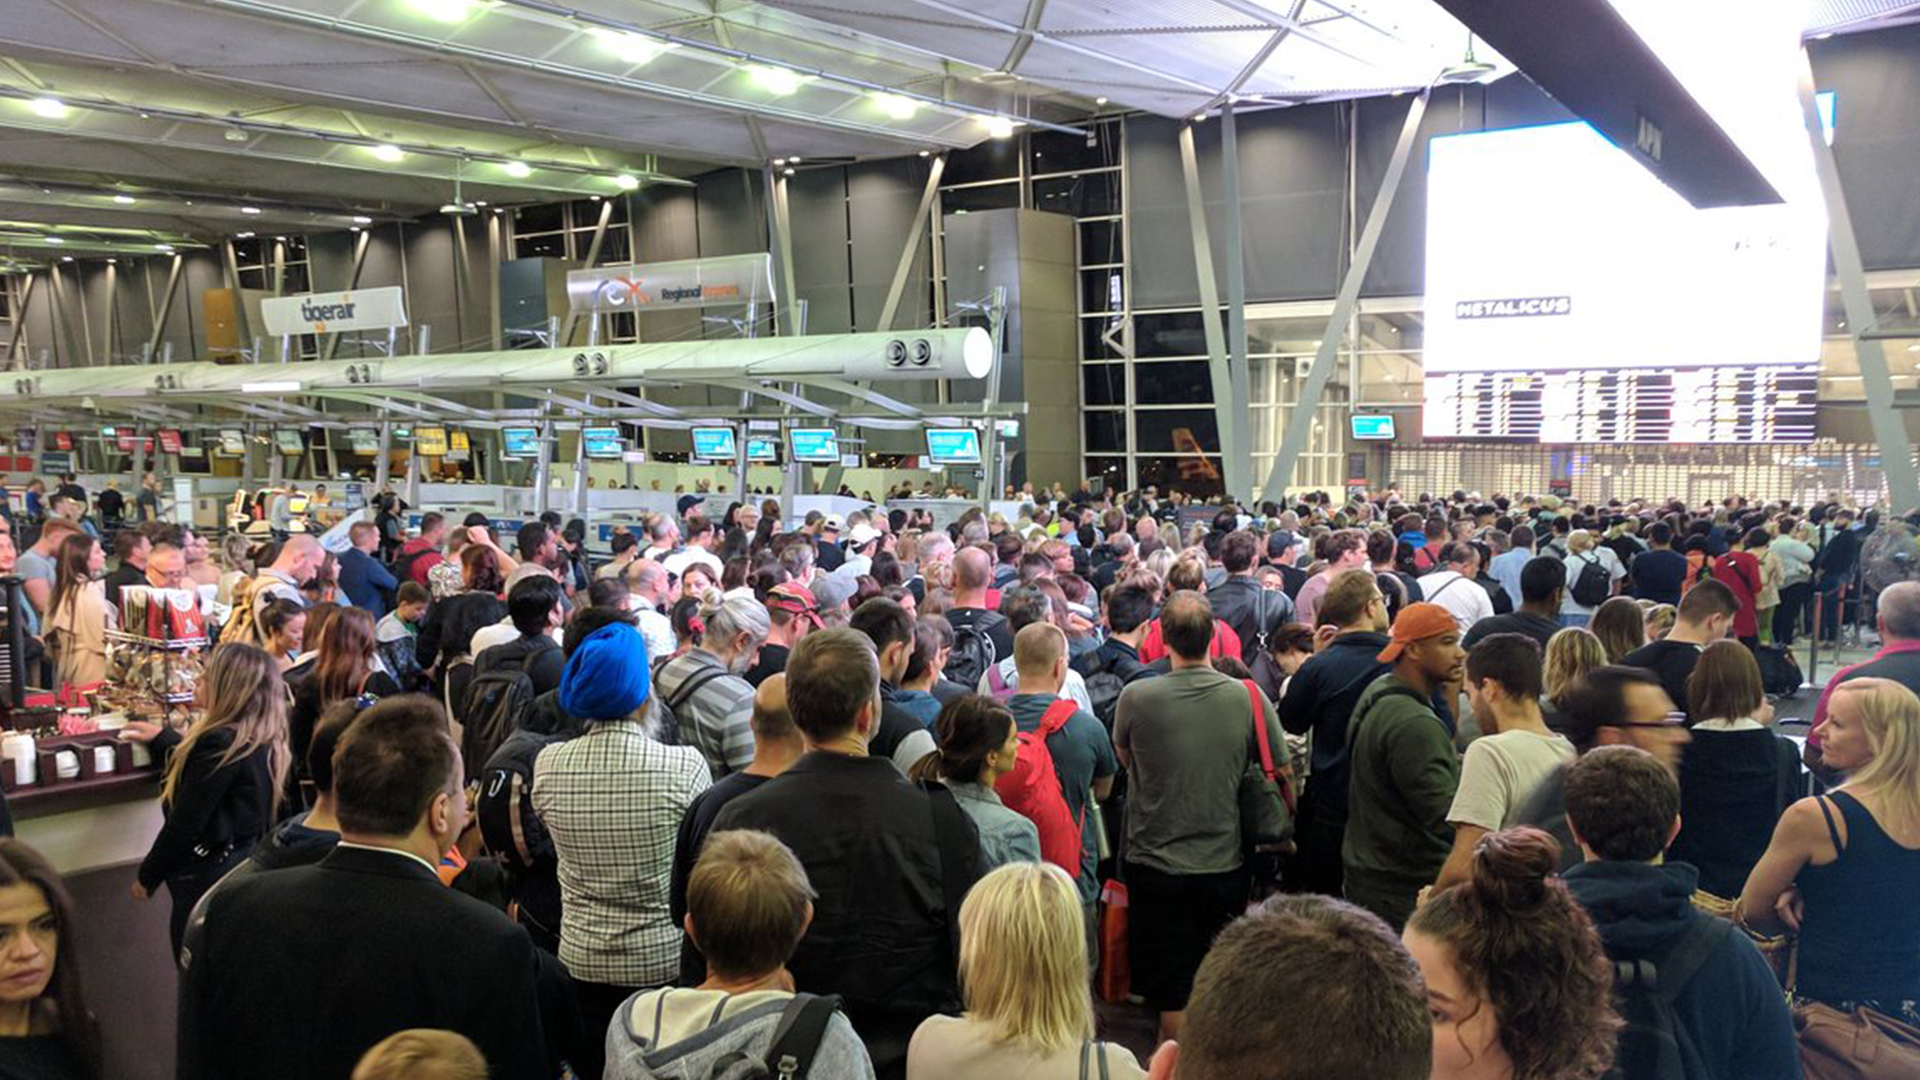 Sydney Airport delays as passengers told to avoid terminals